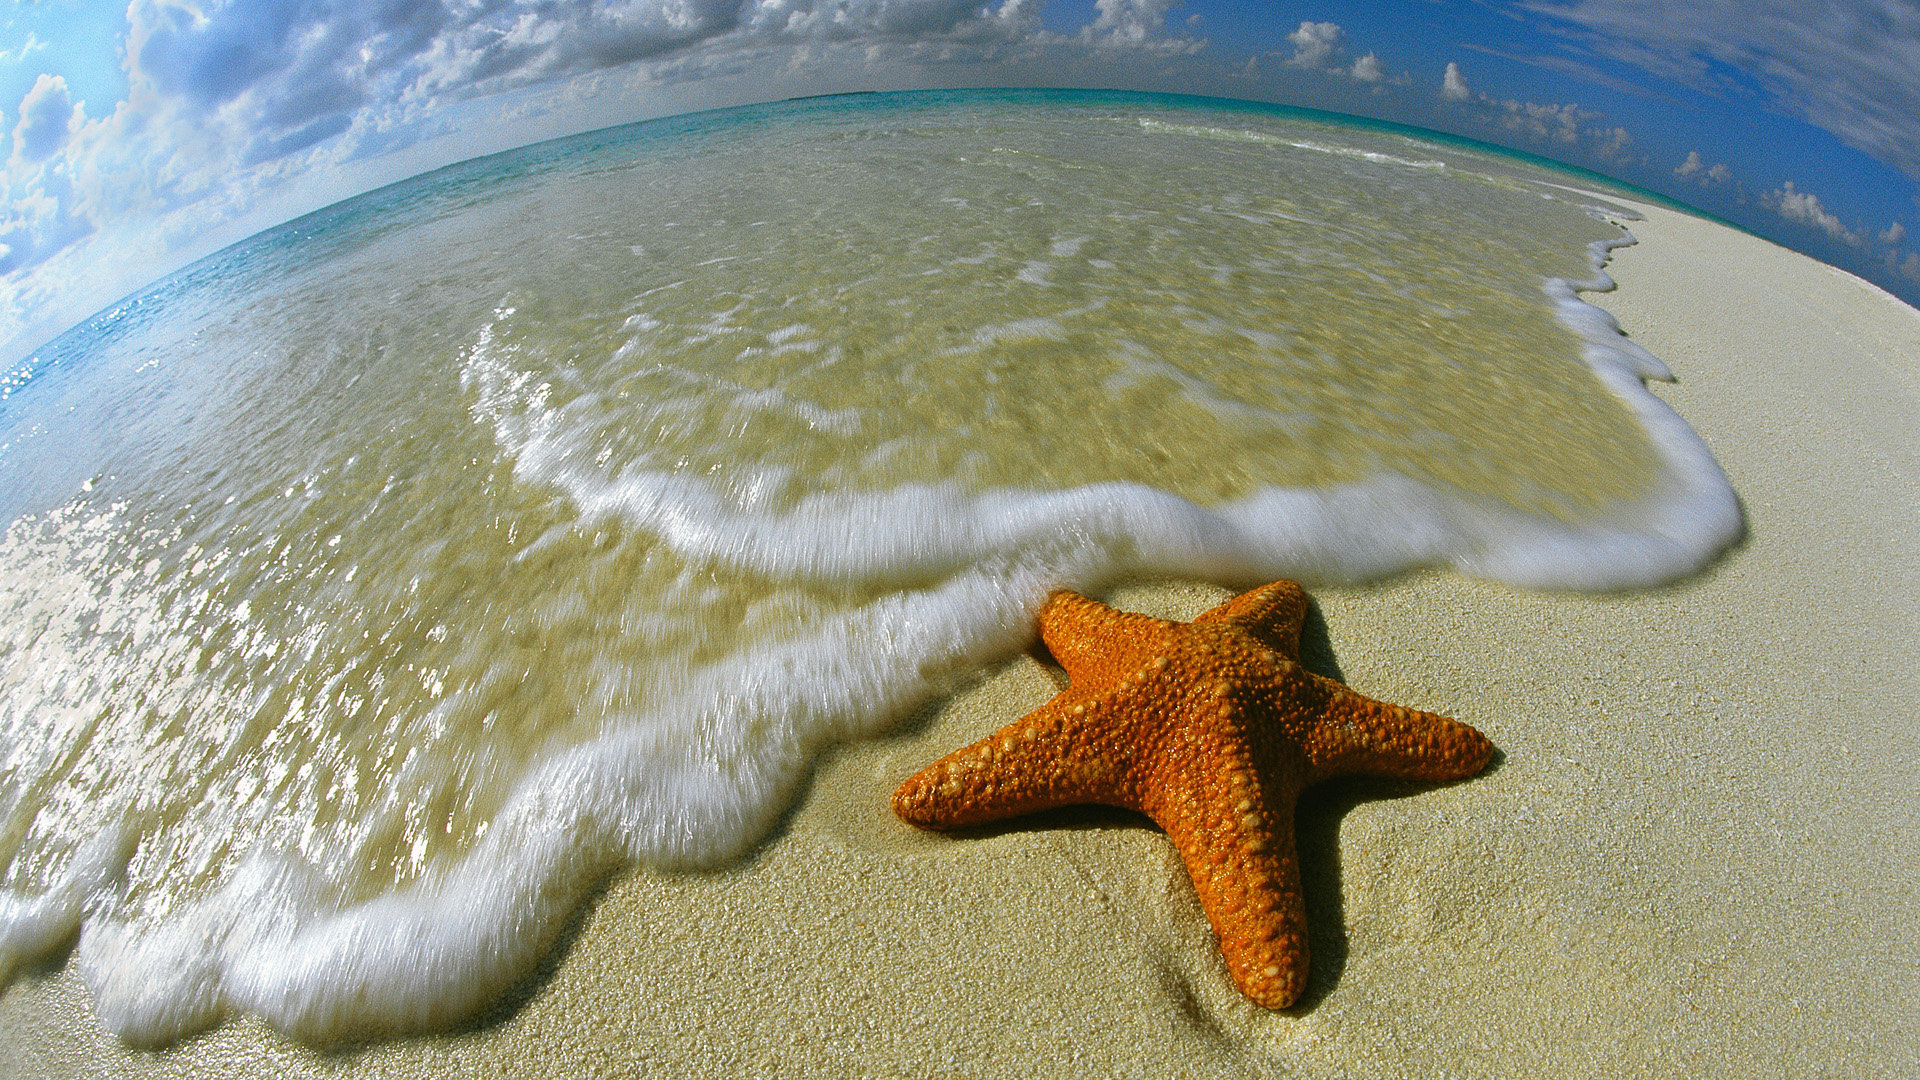 Free download Starfish wallpaper ID:29689 full hd 1920x1080 for computer